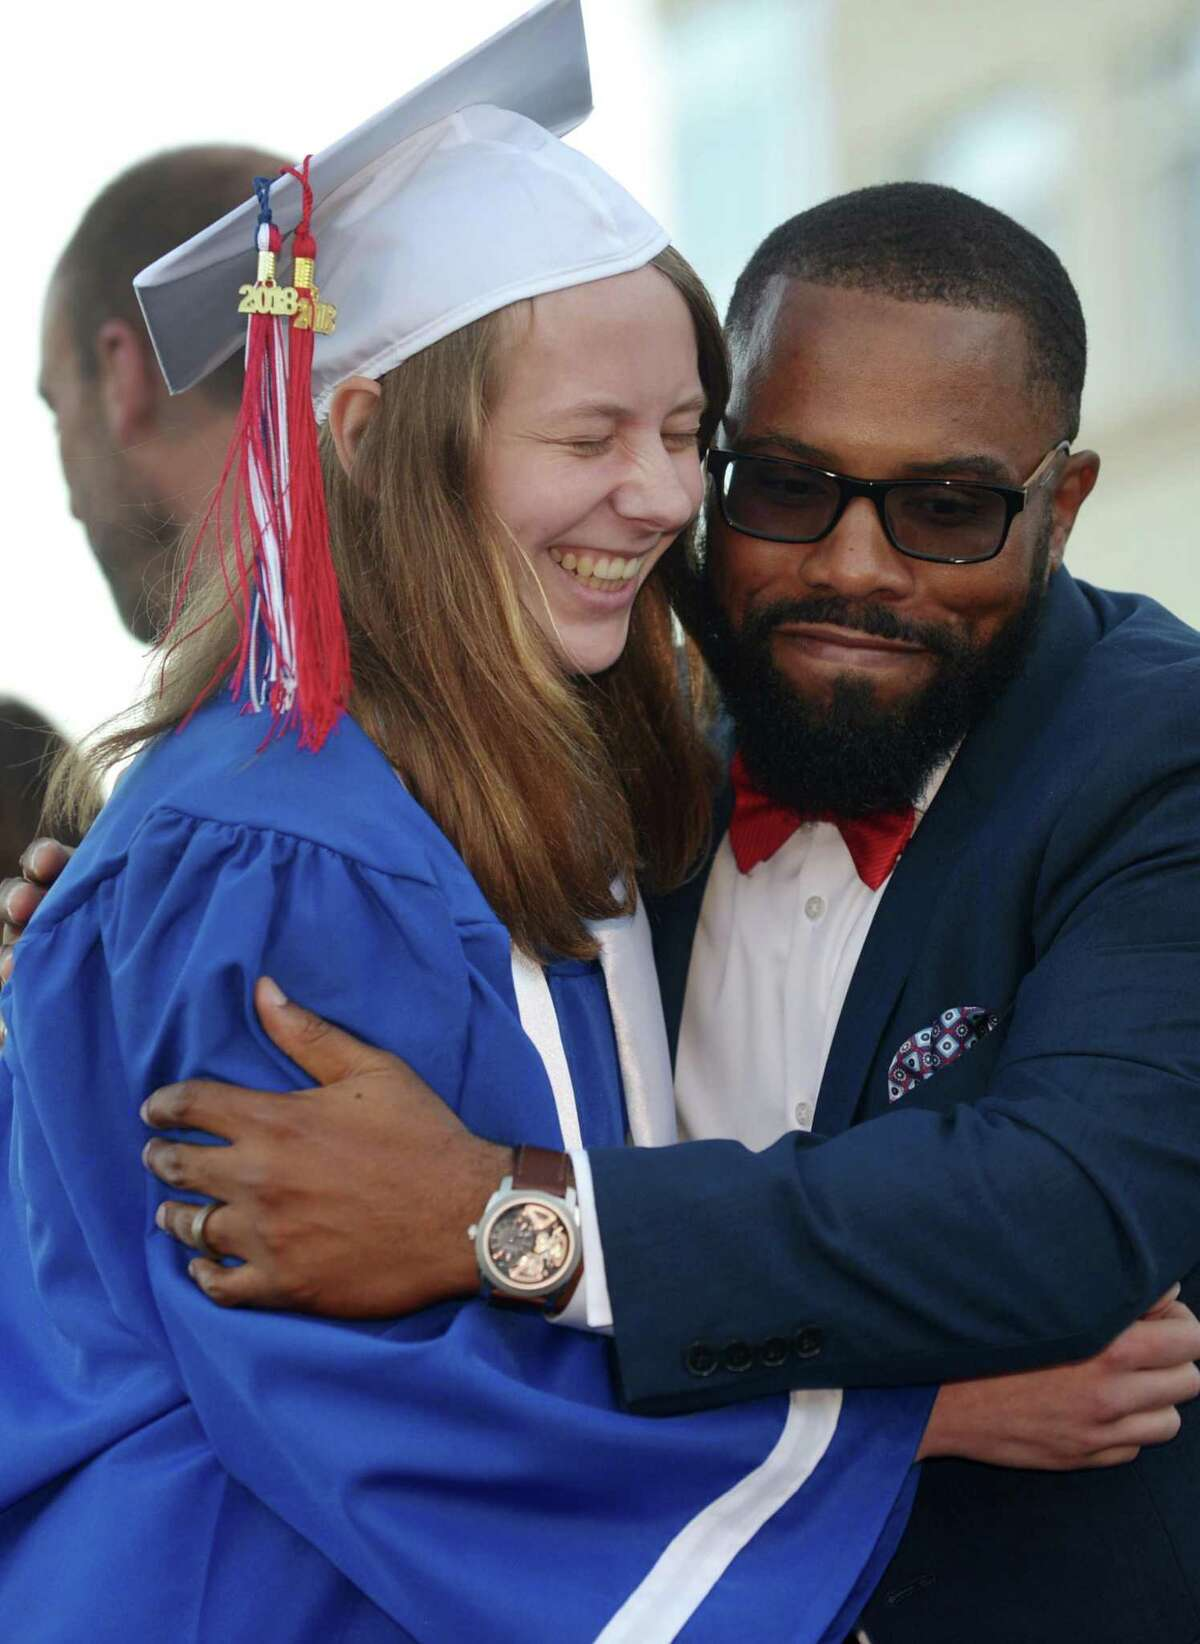 Hayley Linder celebrates the graduation of the Class of 2018 with Assistant Principal Qadir Abdus-Salaam during the Brien McMahon commencement exercises Tuesday, June 19, 2018, in Norwalk, Conn.